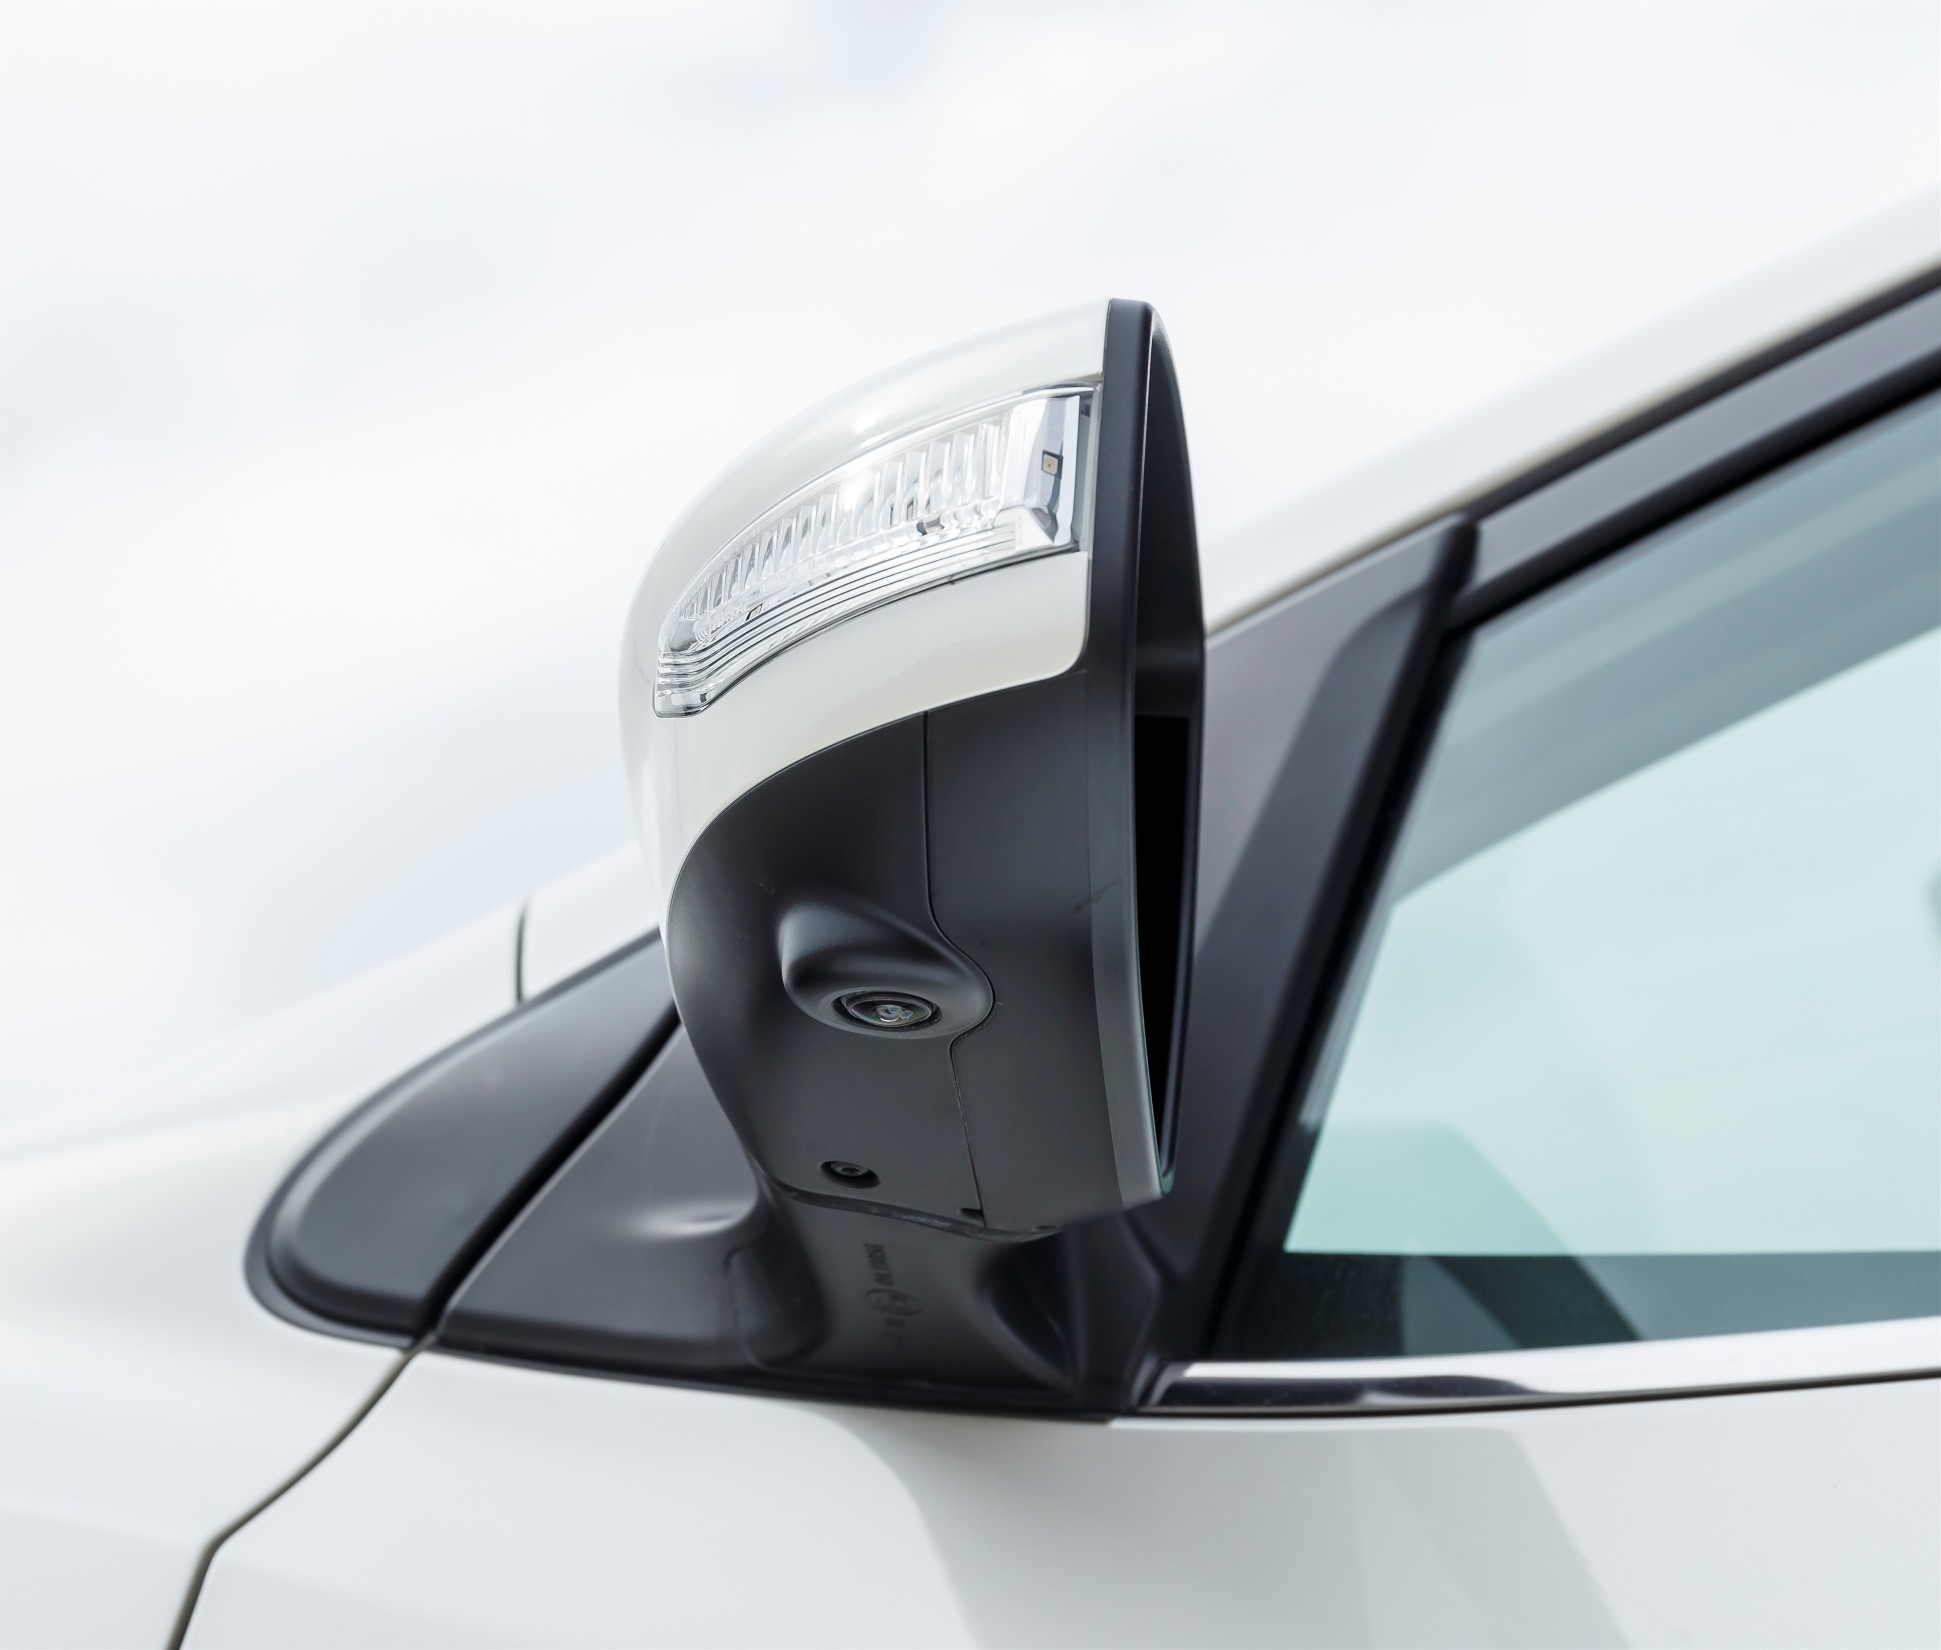 Nissan Pulsar Side view mirror and camera